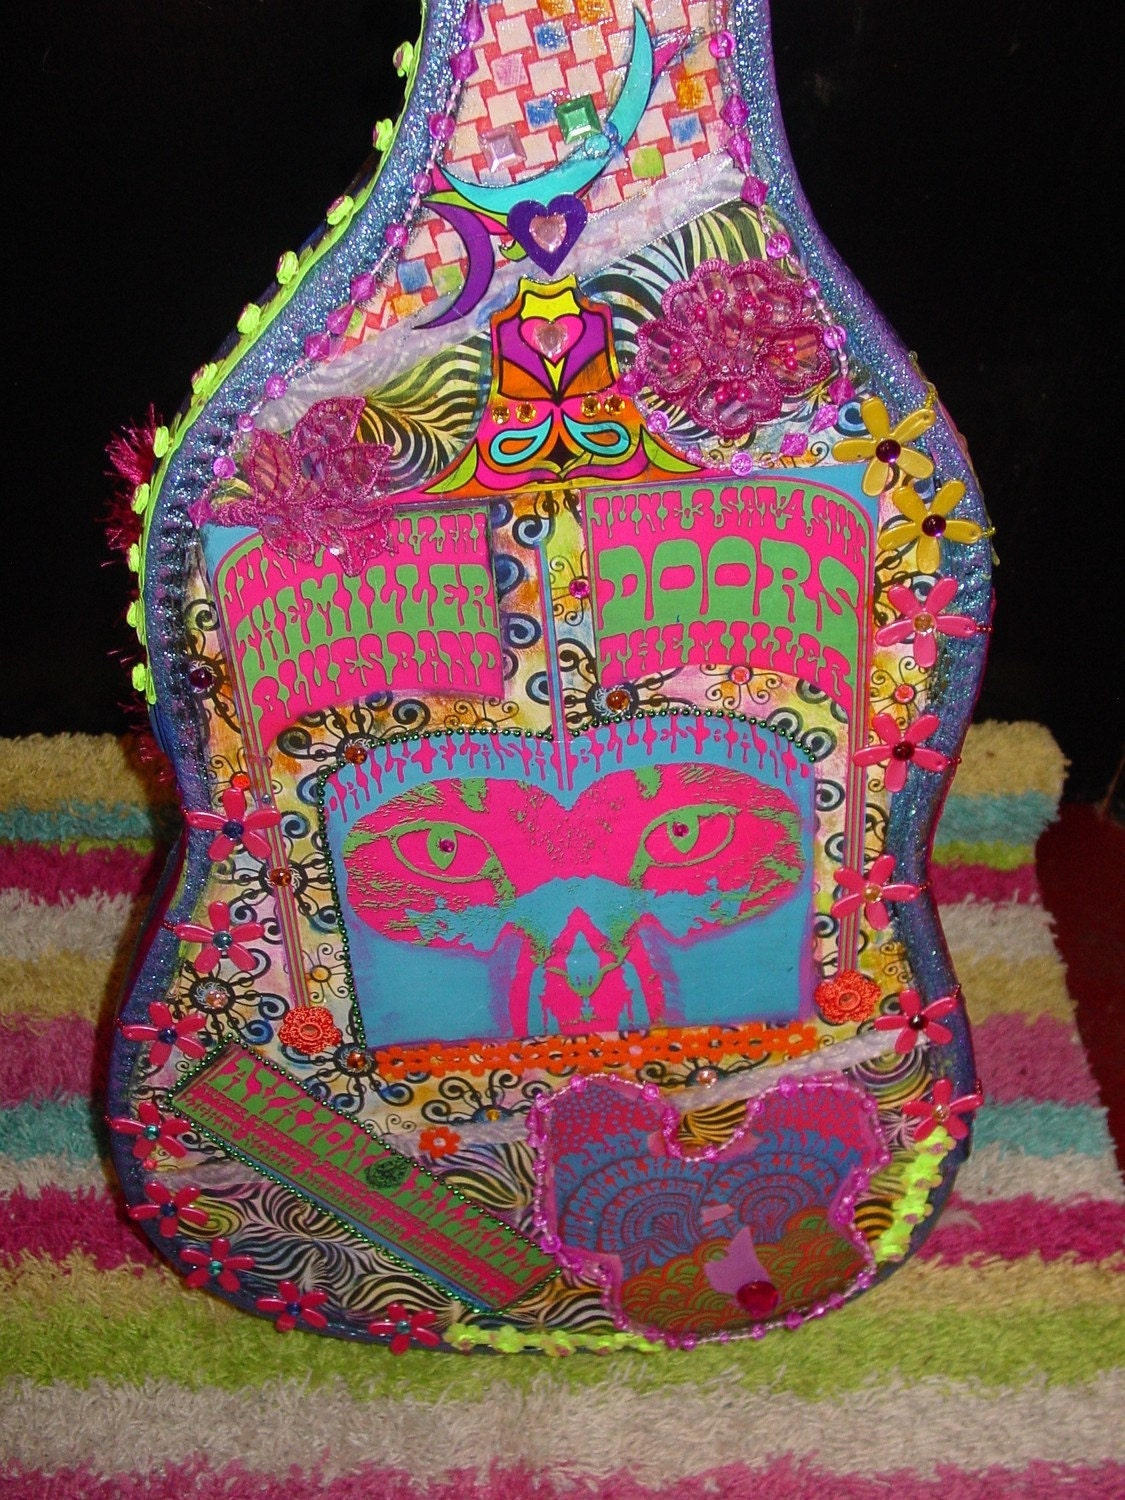 RECYCLED vintage guitar case retro 60s groovy flower power design